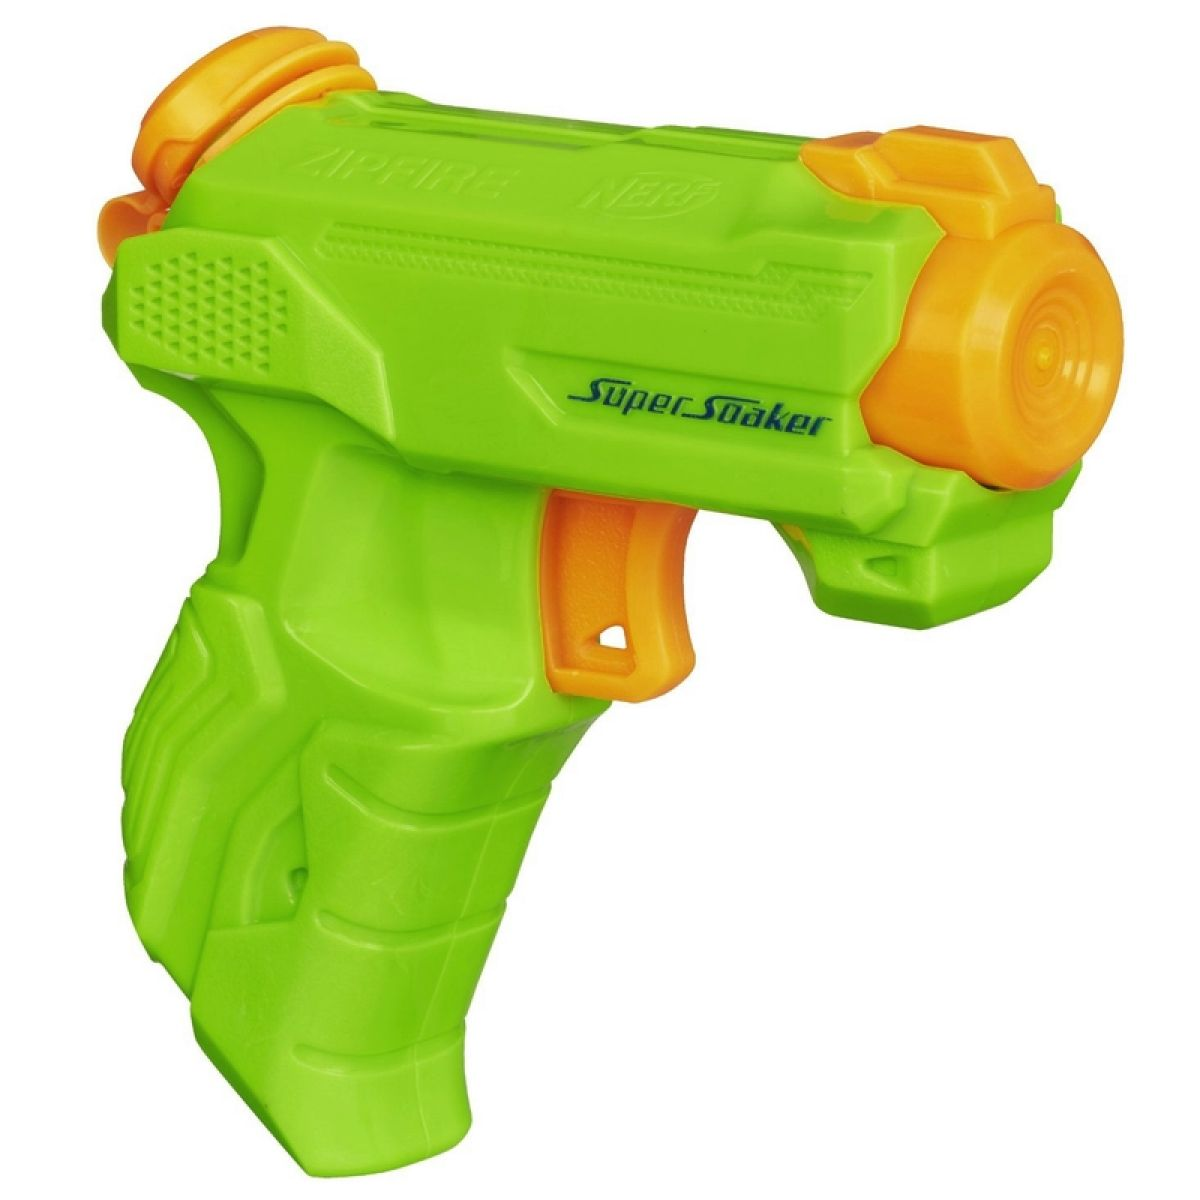 Nerf Super Soaker Zip Fire